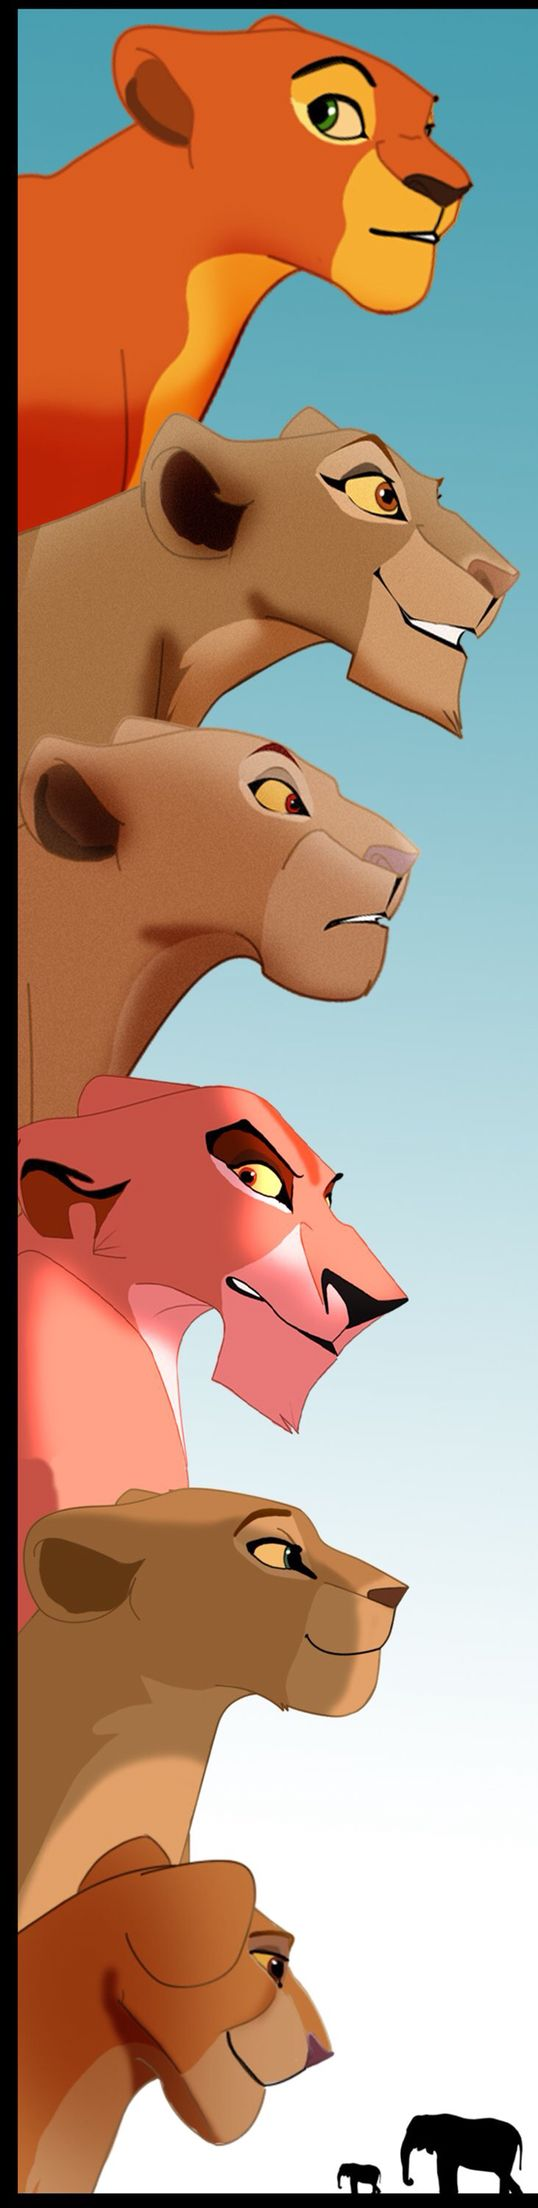 97 best all about the lion king images on pinterest the lion king disney magic and disney stuff